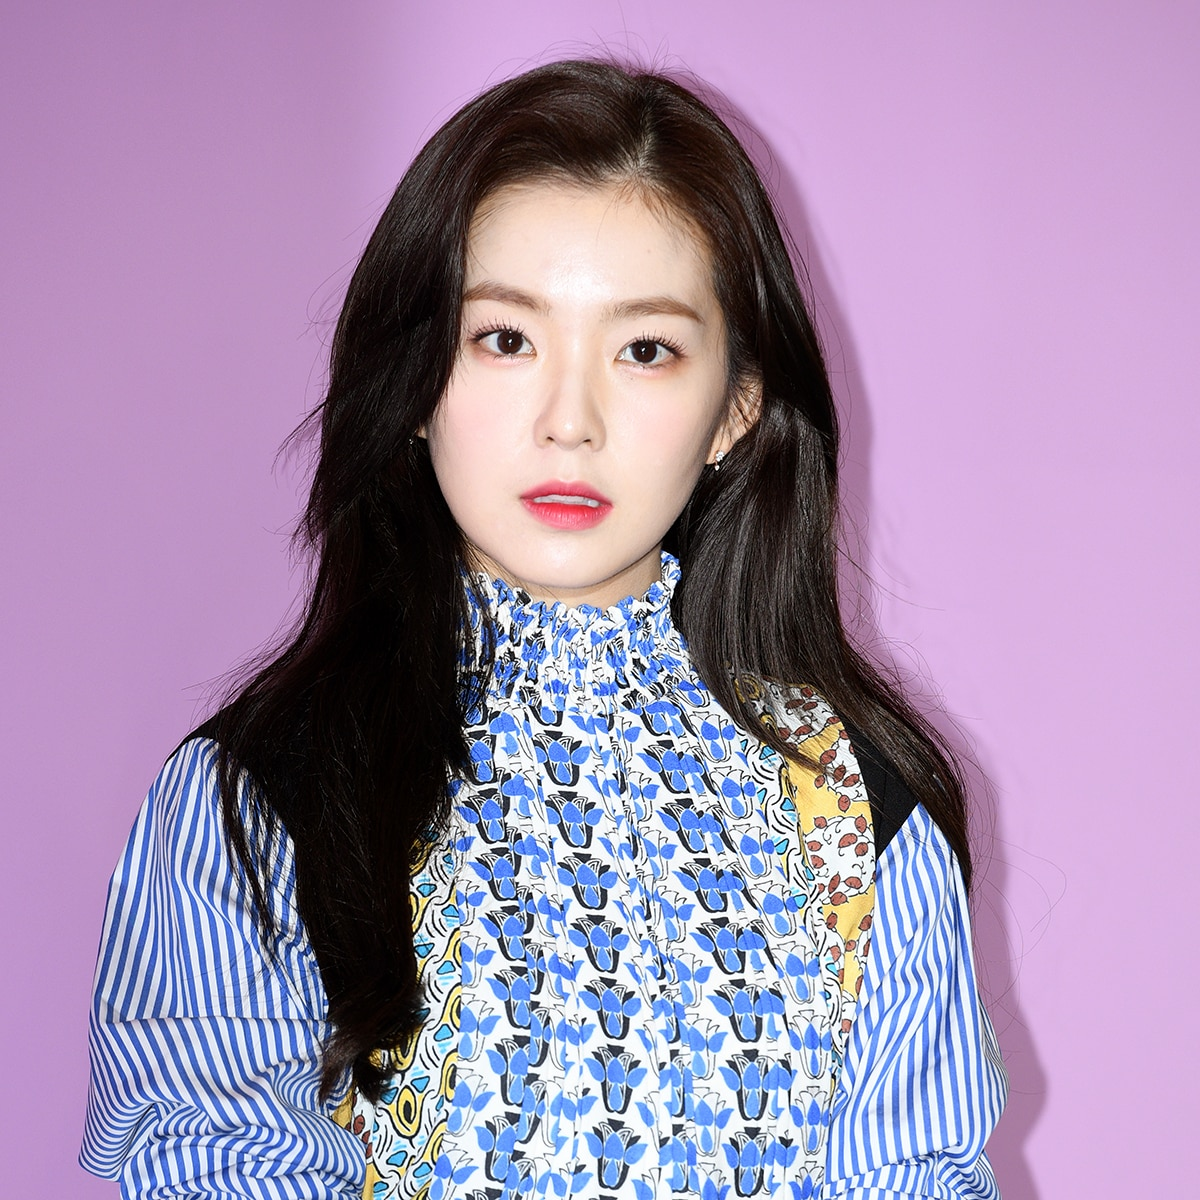 K Pop Star Irene Apologizes After Verbally Attacking Fashion Editor E Online